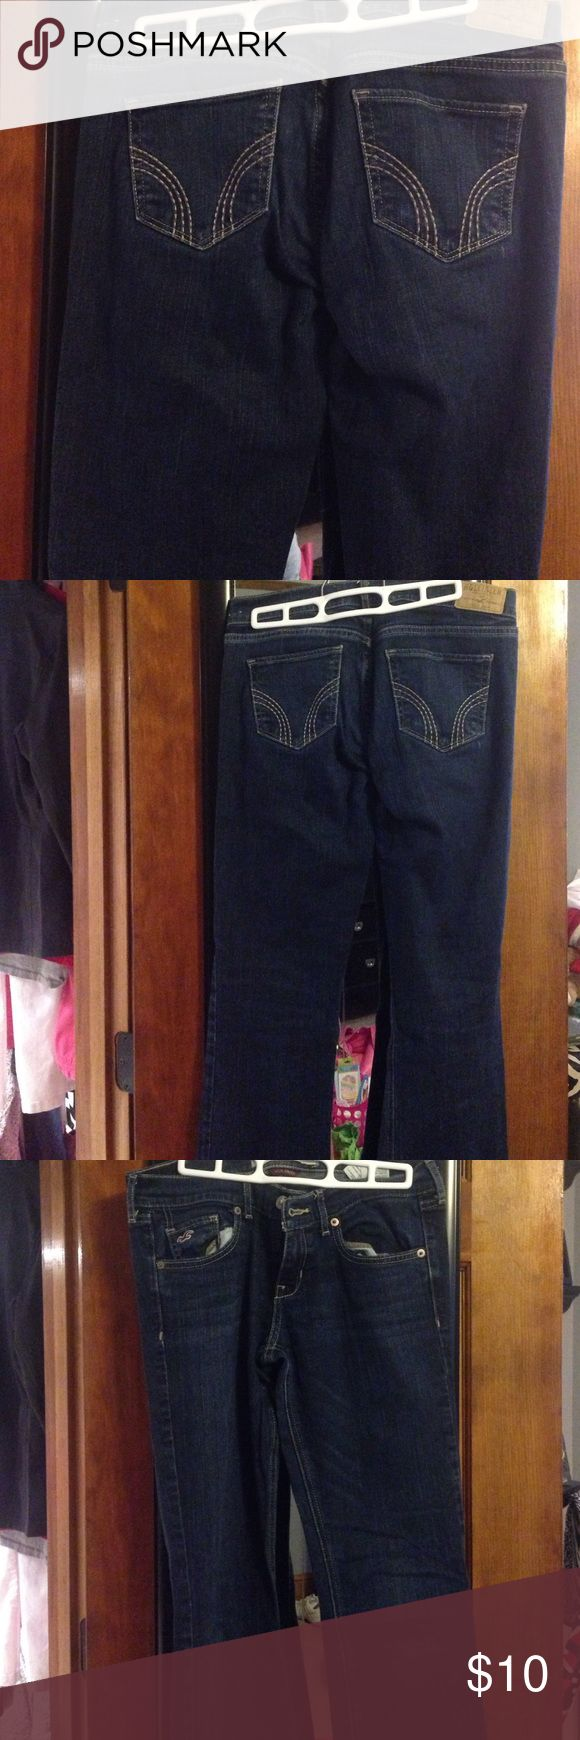 Hollister Jeans Hollister jeans. They are a straight cut/boot cut jean. Size 5L. W27 L35. No stains or rips. Smoke free home! Hollister Pants Straight Leg